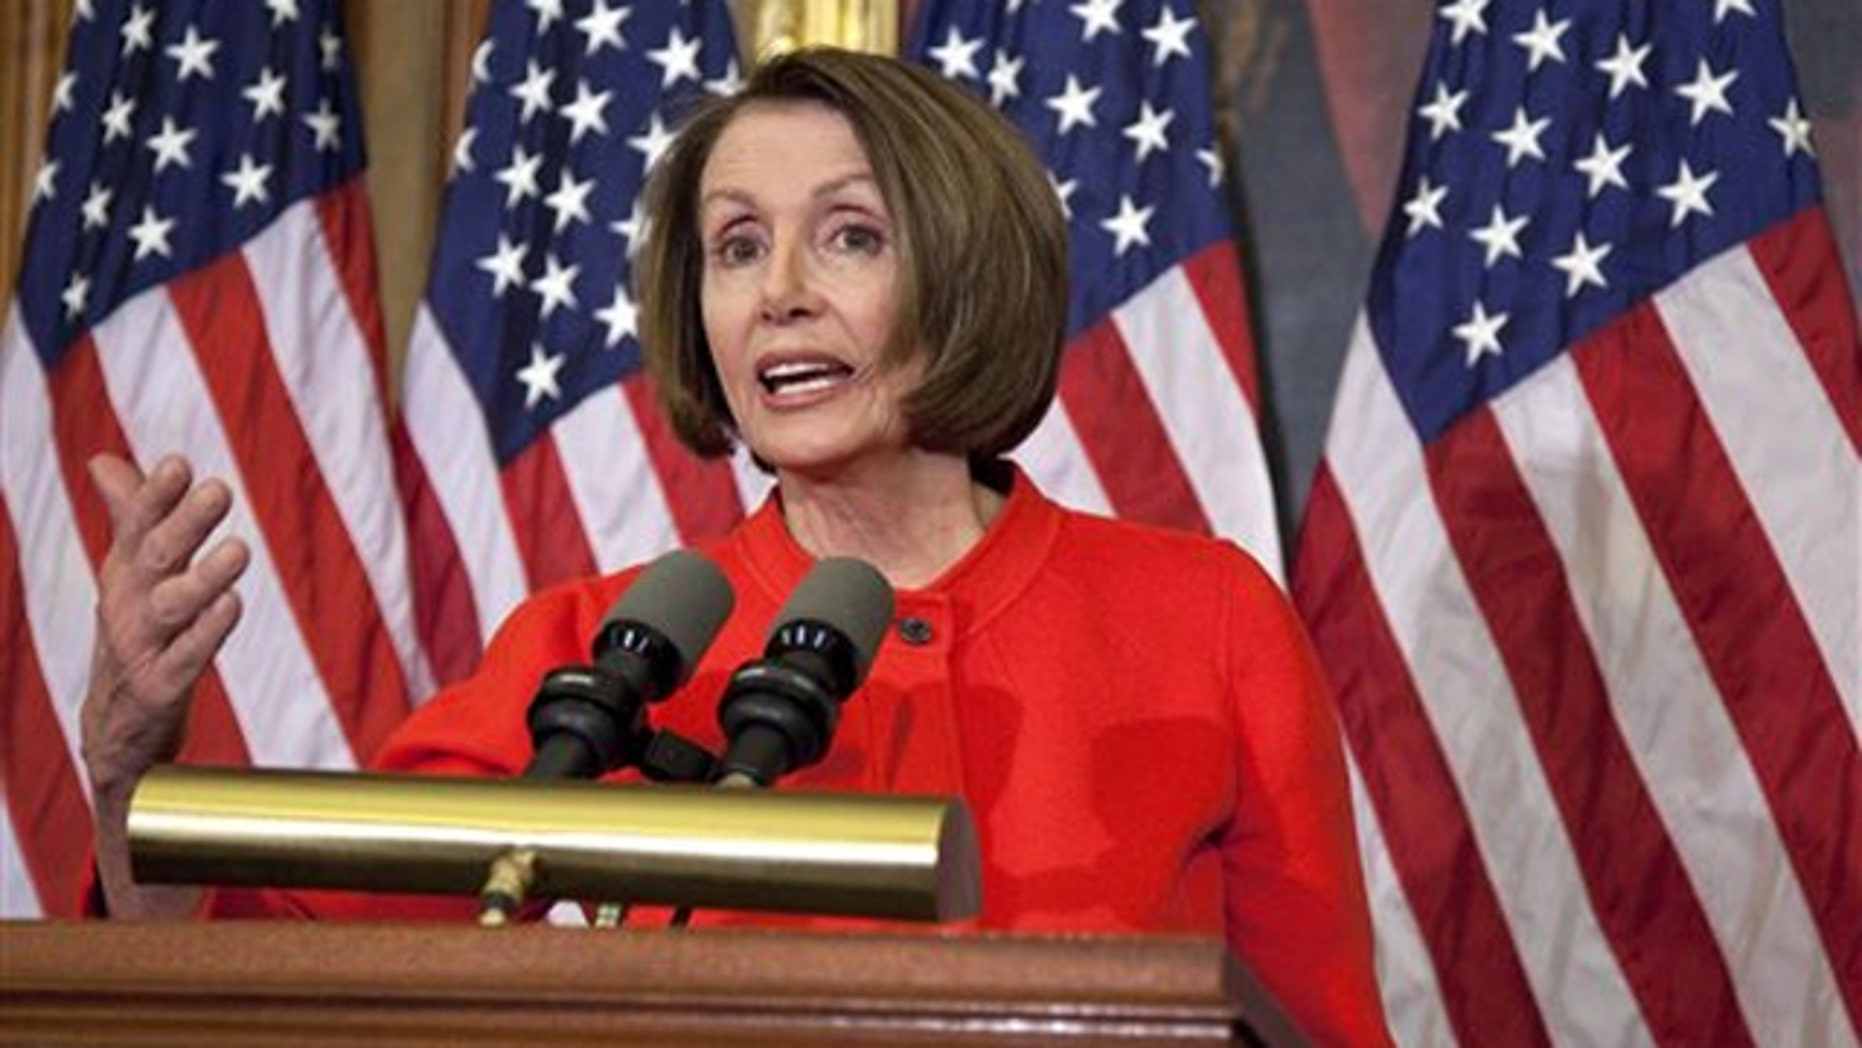 In this Dec. 15 file photo, outgoing House Speaker Nancy Pelosi gestures during a news conference.